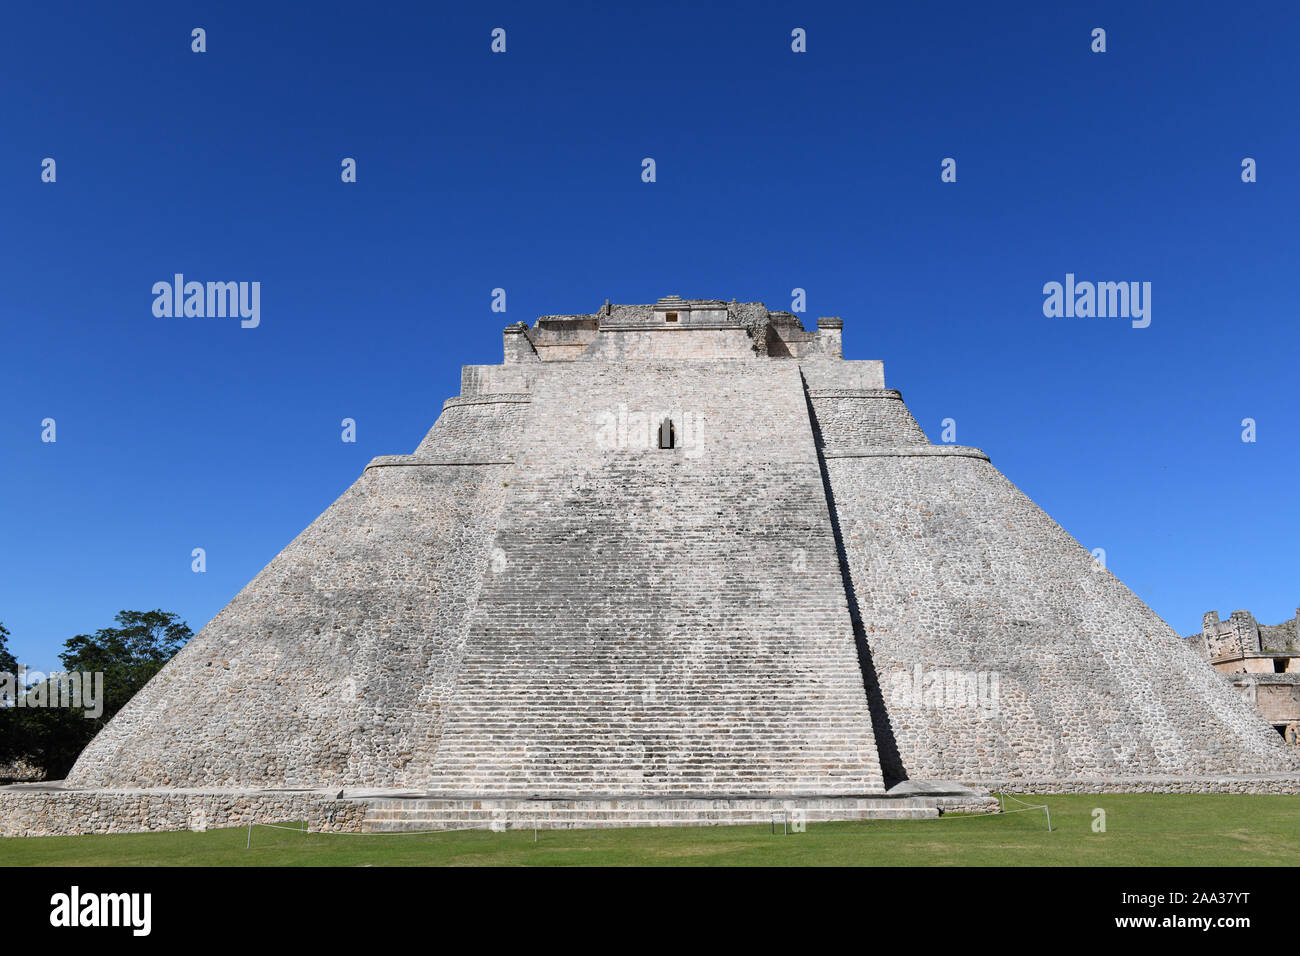 Pyramid of the Magician in Uxmal, an ancient Maya city of the classical period located in the Puuc region of the eastern Yucatan Peninsula, Mexico Stock Photo